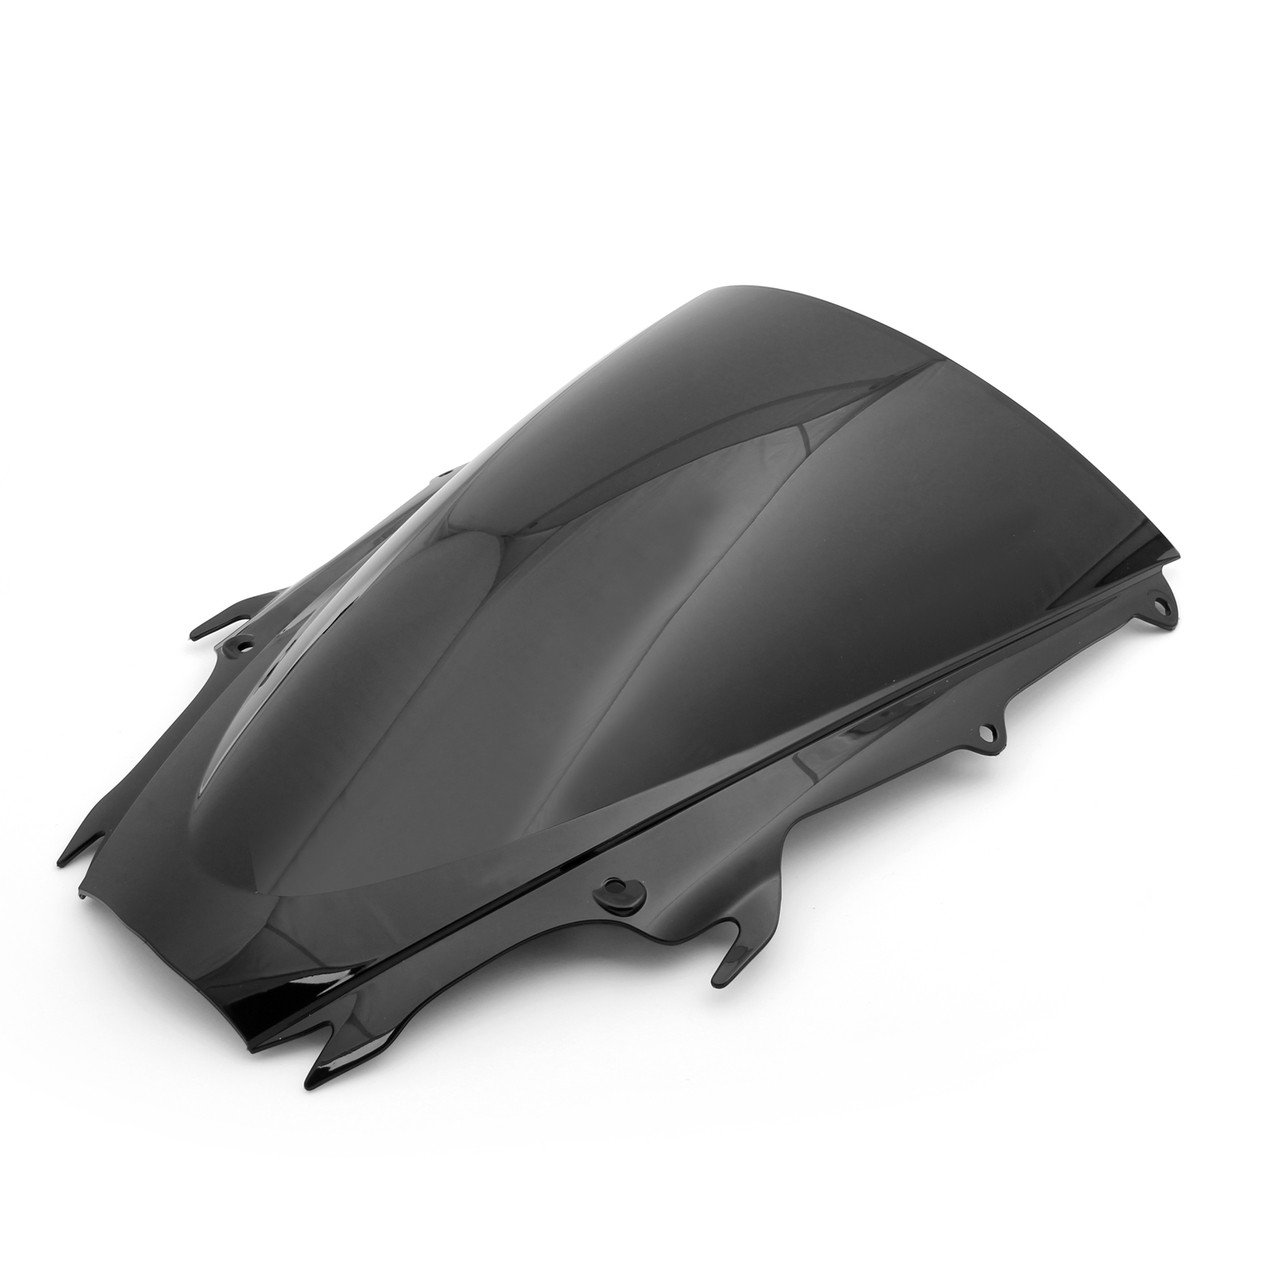 Windshield WindScreen Double Bubble For Triumph Daytona 675 2009-2013